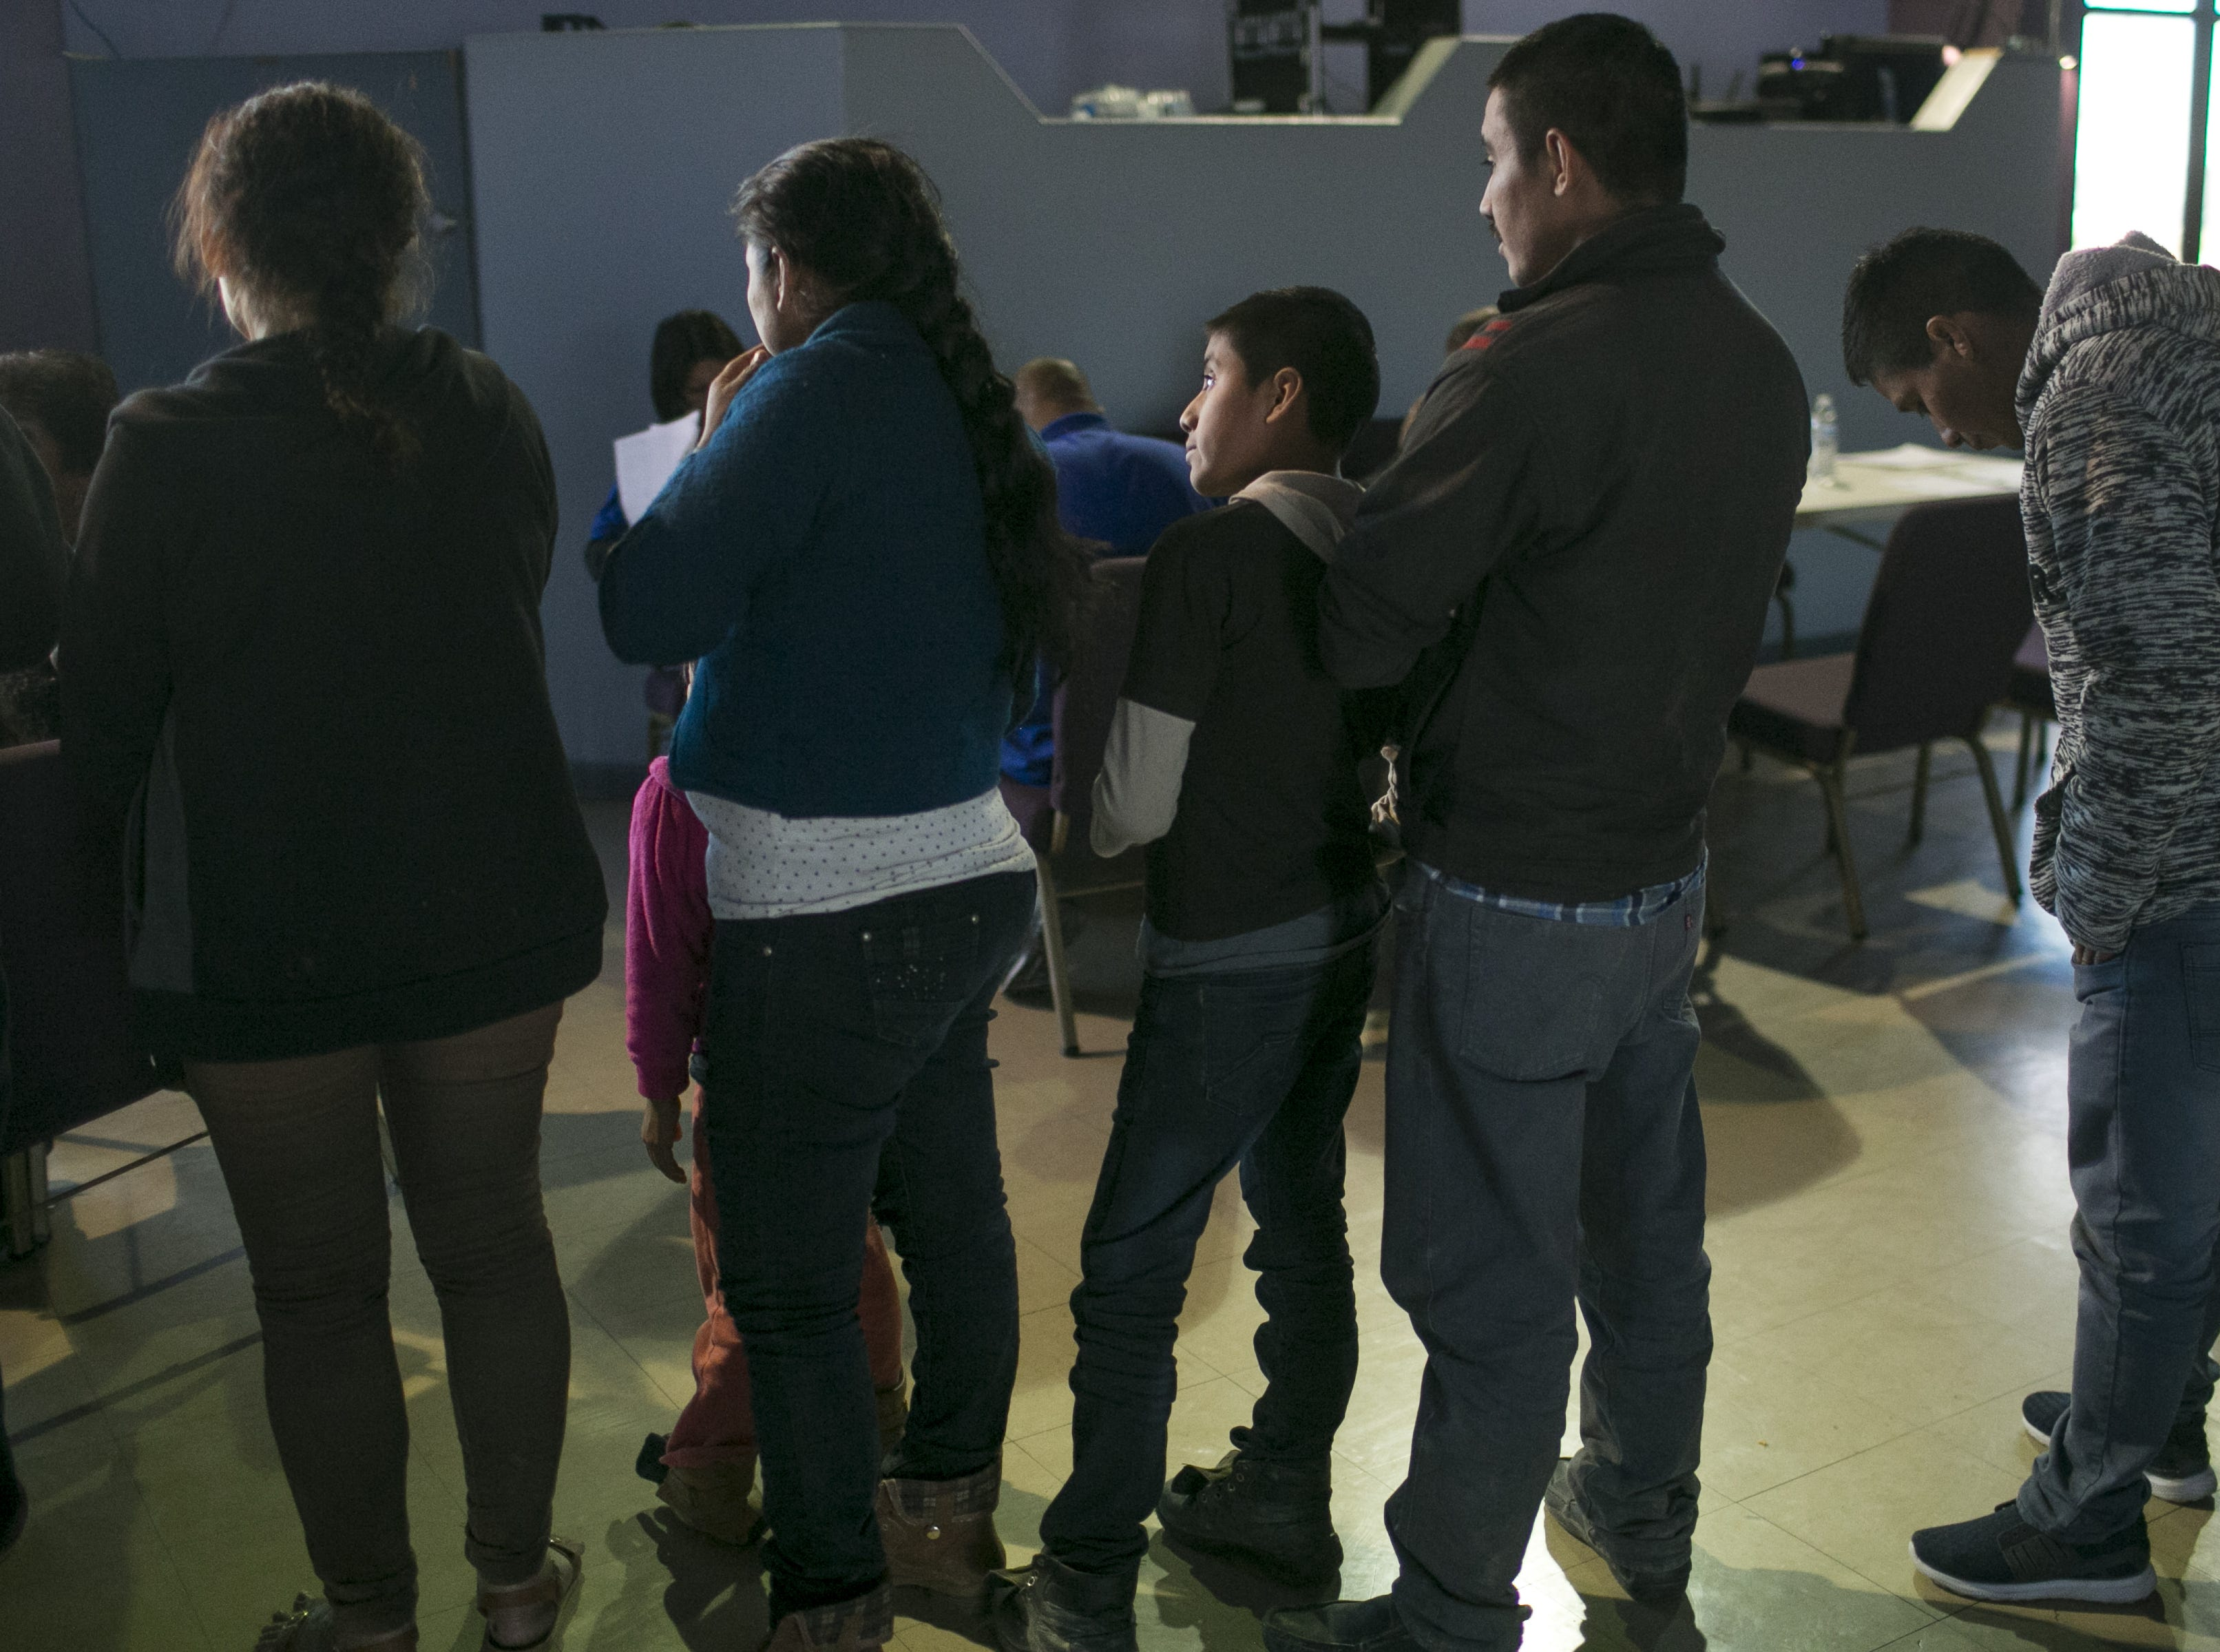 Asylum seekers and migrants from Central America wait at La Hermosa Church in Phoenix after being dropped off by U.S. Immigration Customs and Enforcement on Dec. 20, 2018. The Department of Homeland Security announced a policy forcing asylum seekers to await their status approval in Mexico.